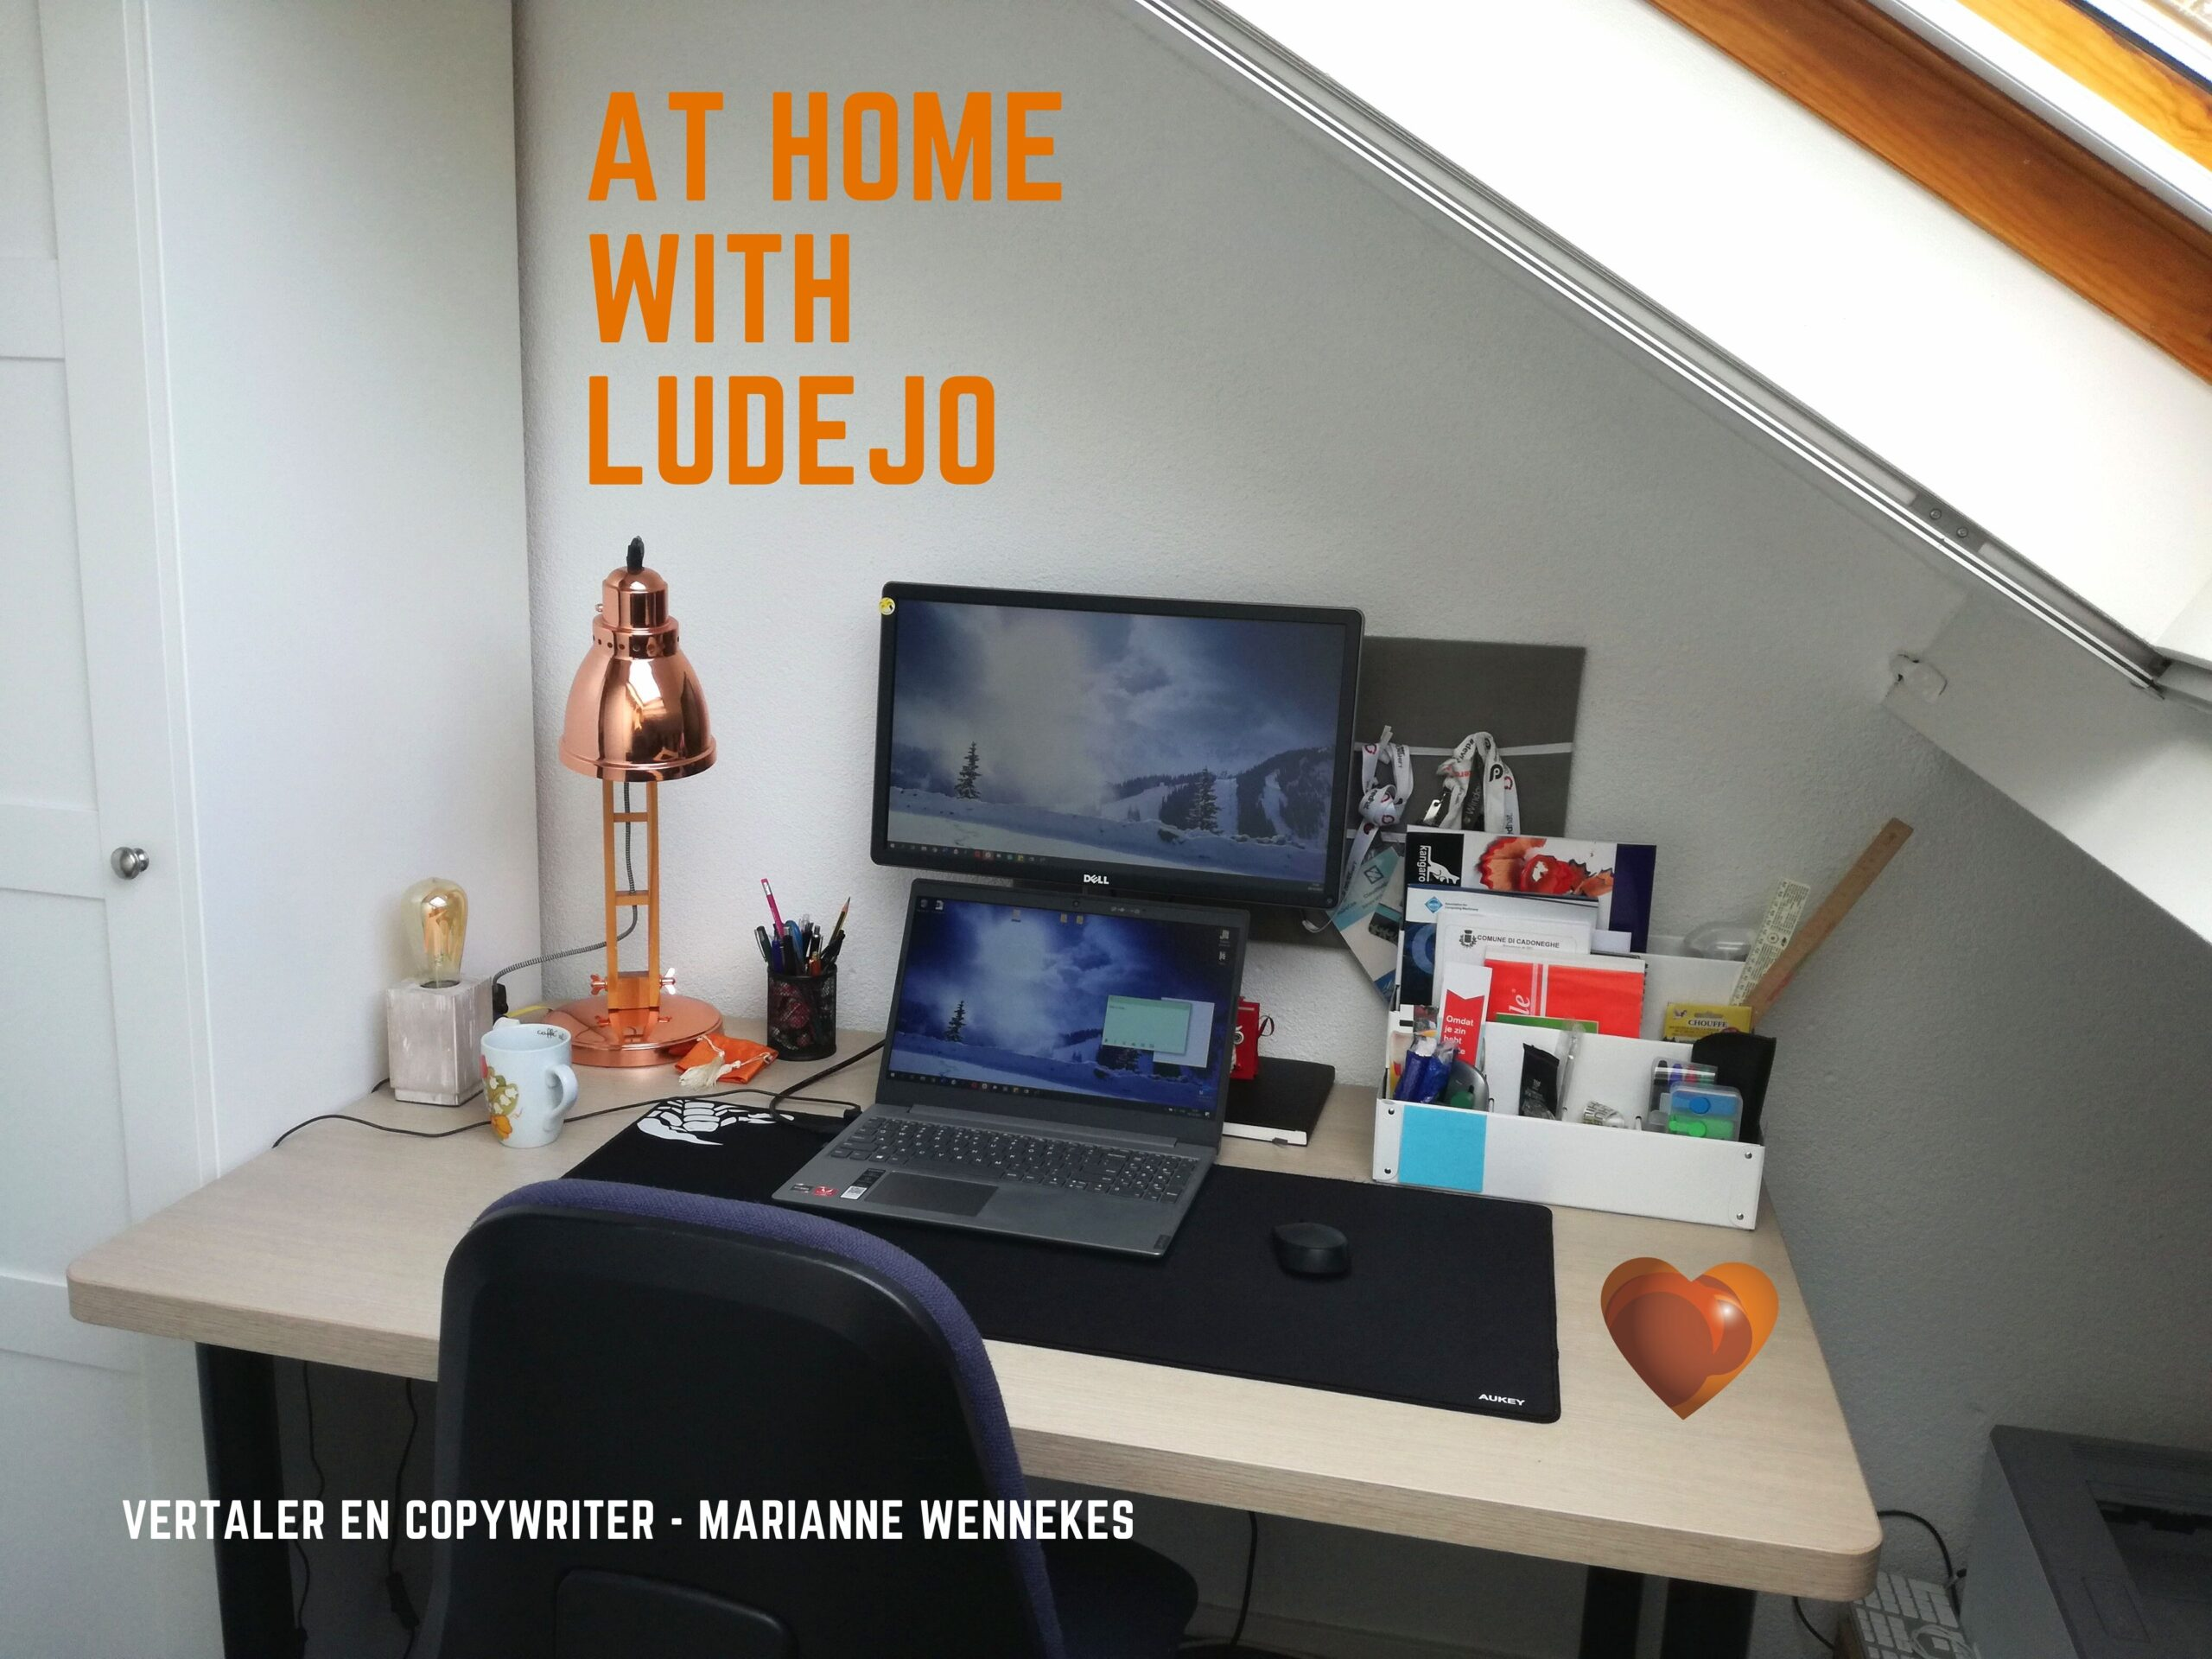 At Home with Ludejo - Marianne Wennekes